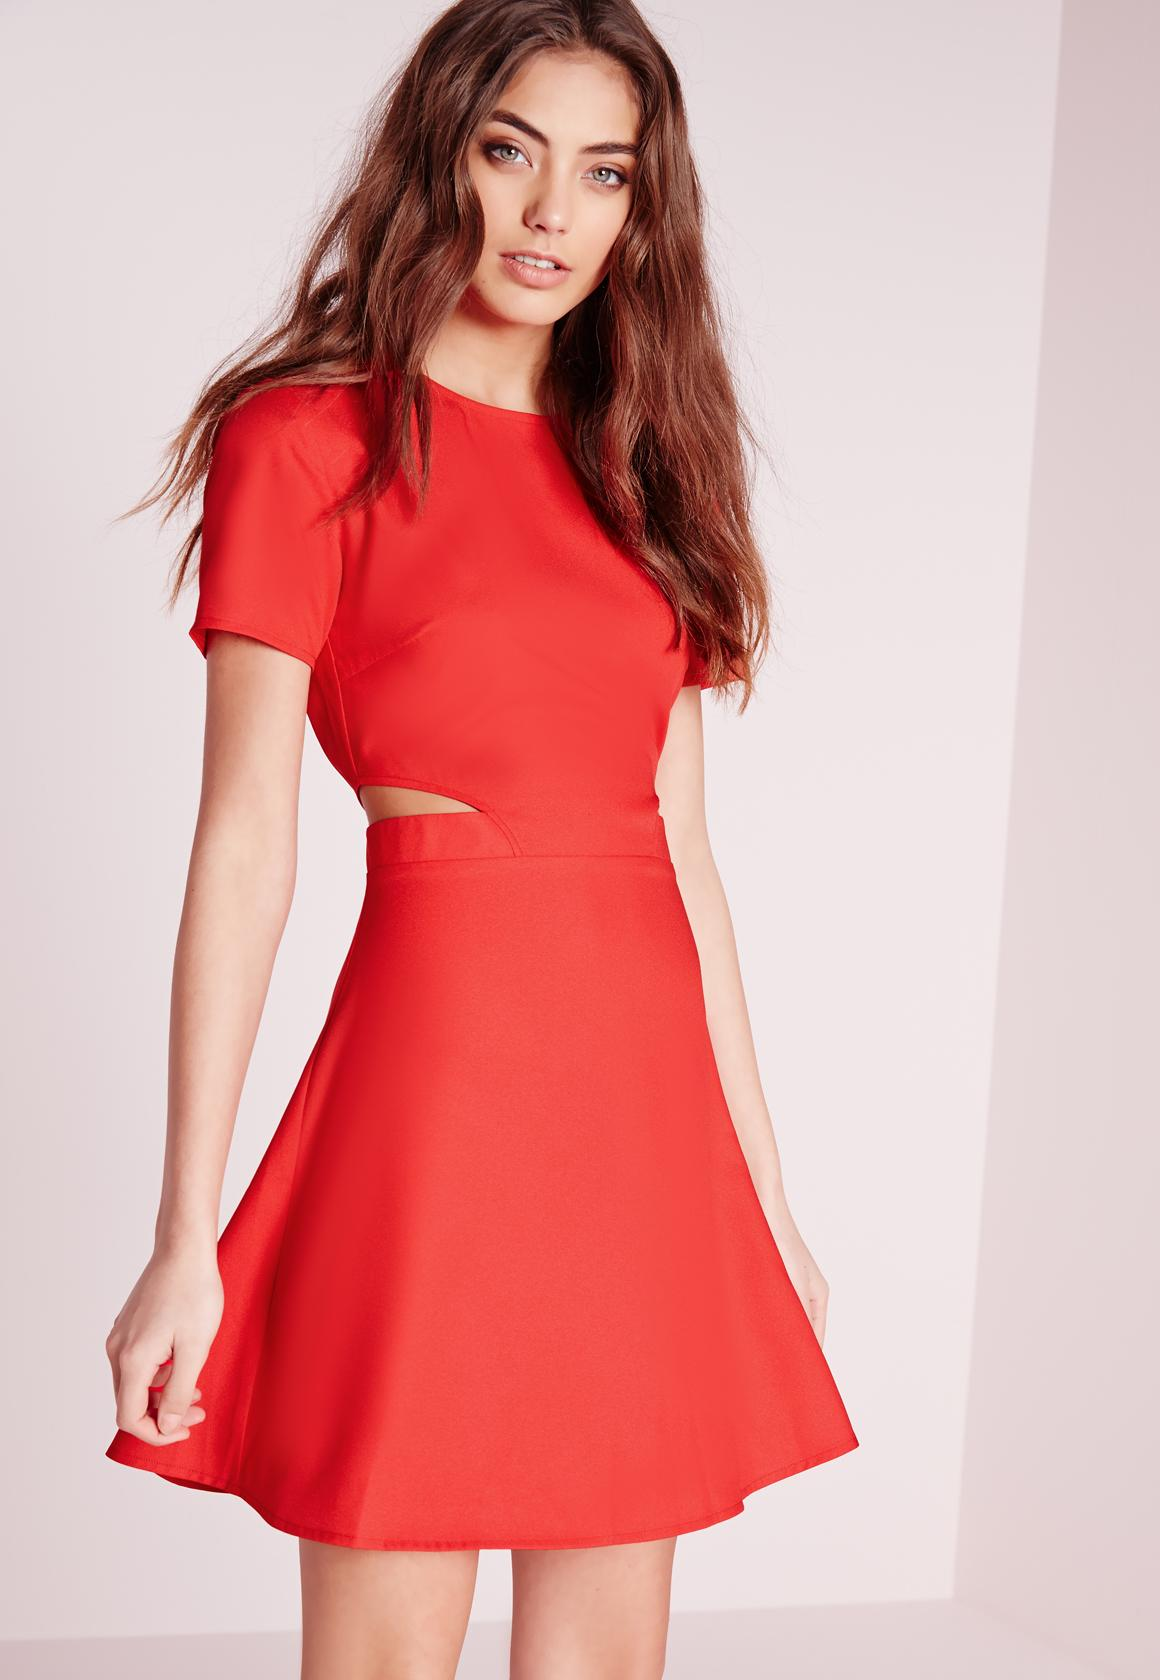 Short Sleeve Crepe Cut Out Waist Skater Dress Red  89bfbf915